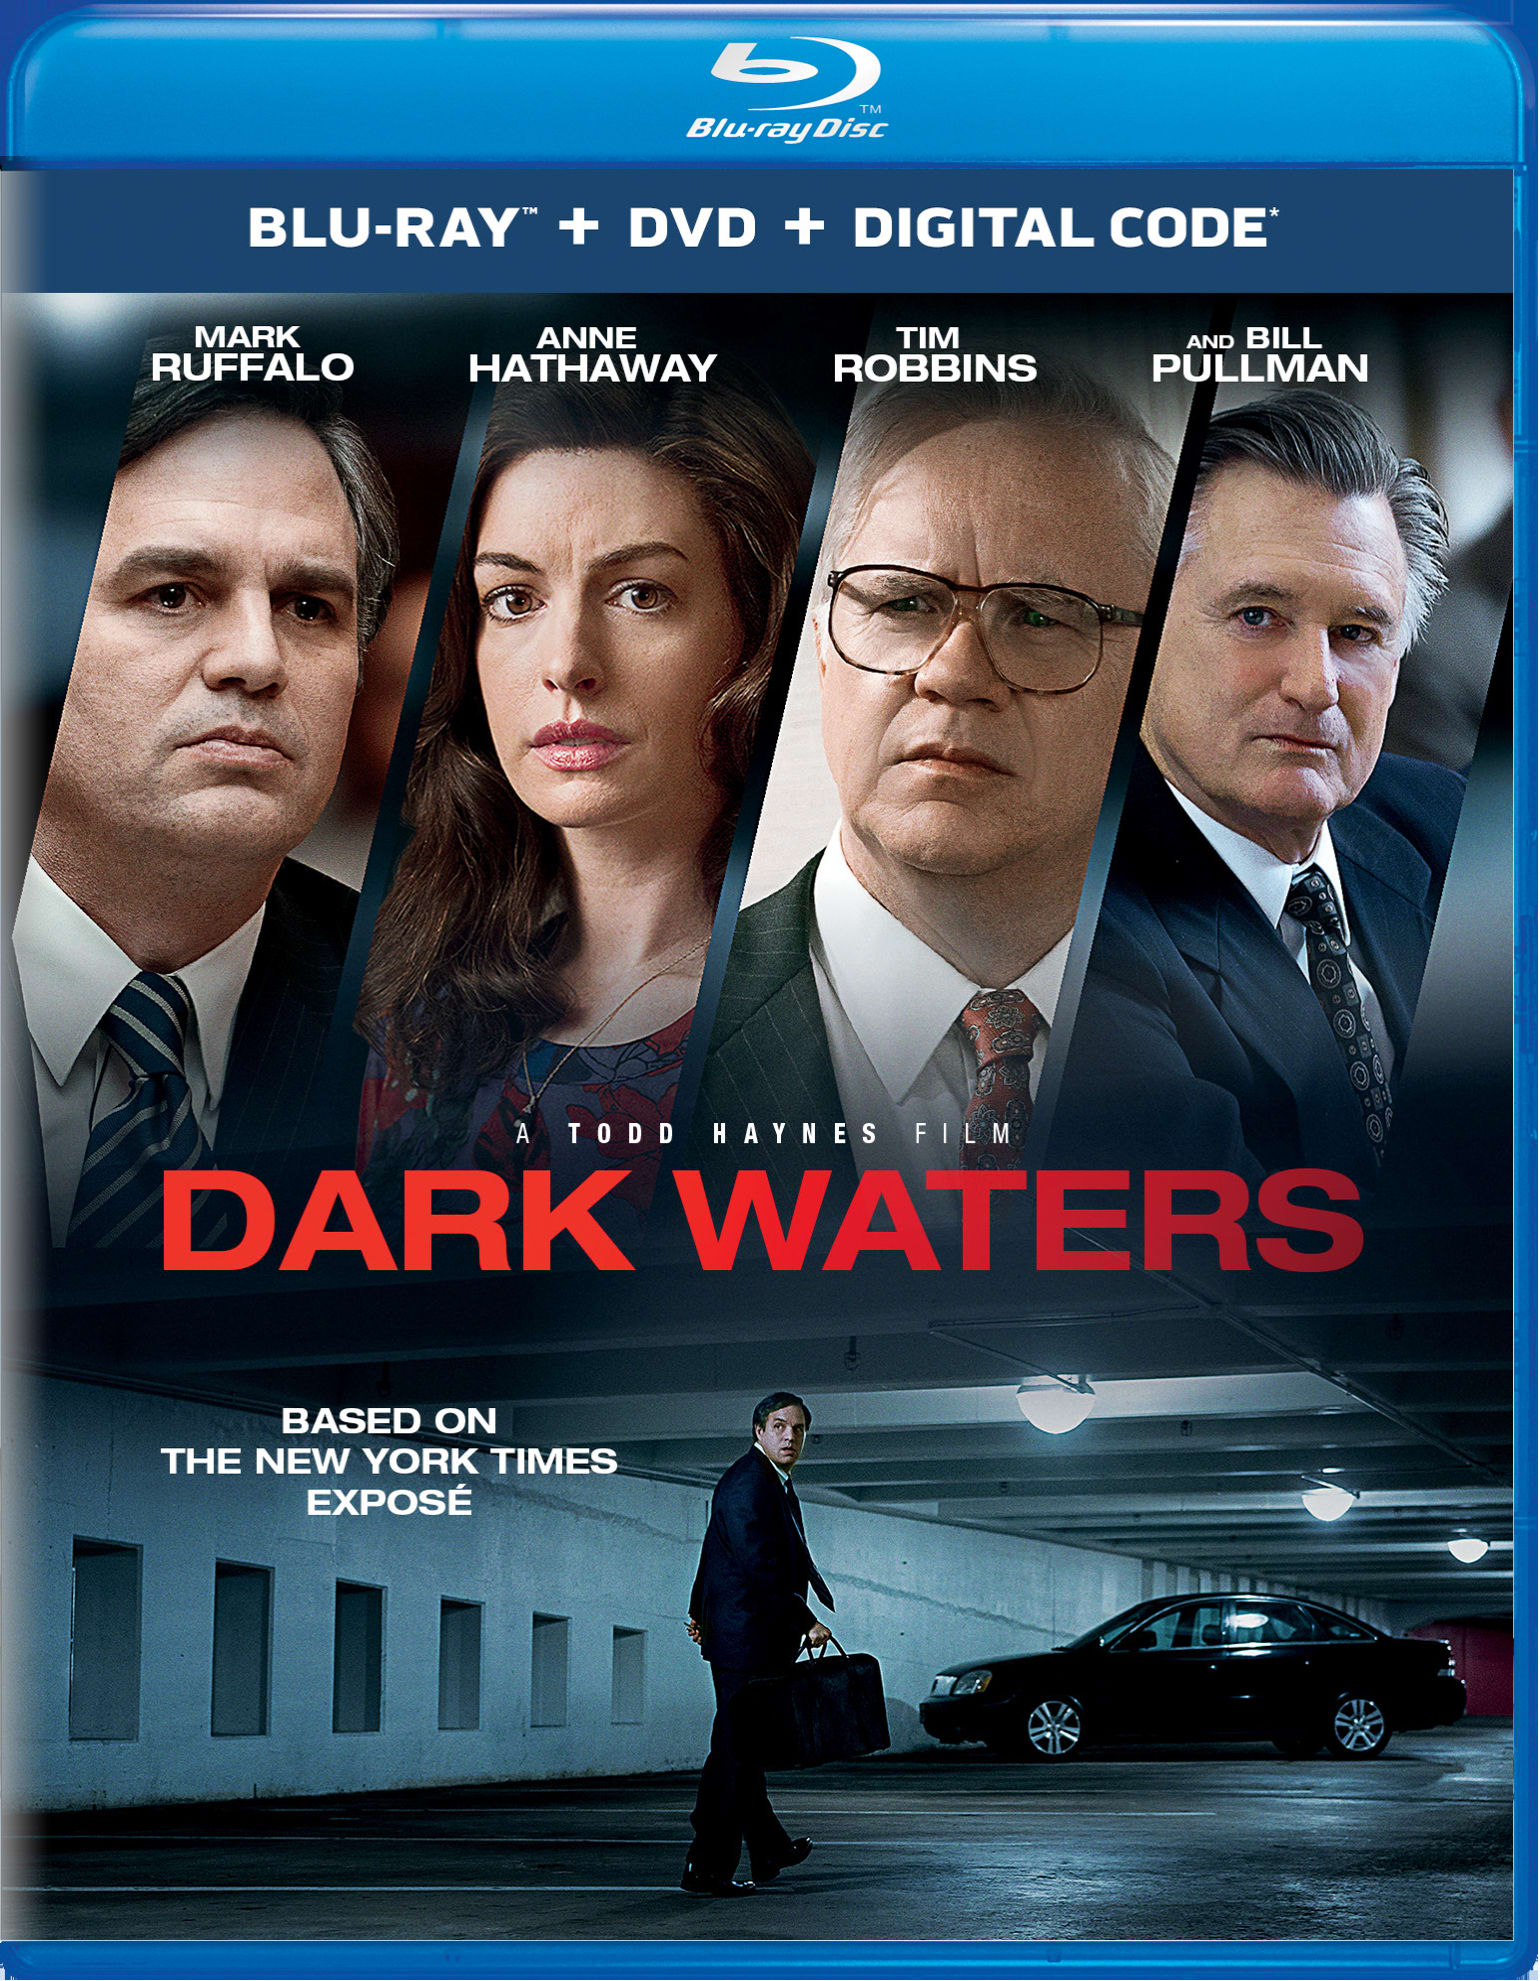 Dark Waters (DVD + Digital) [Blu-ray]